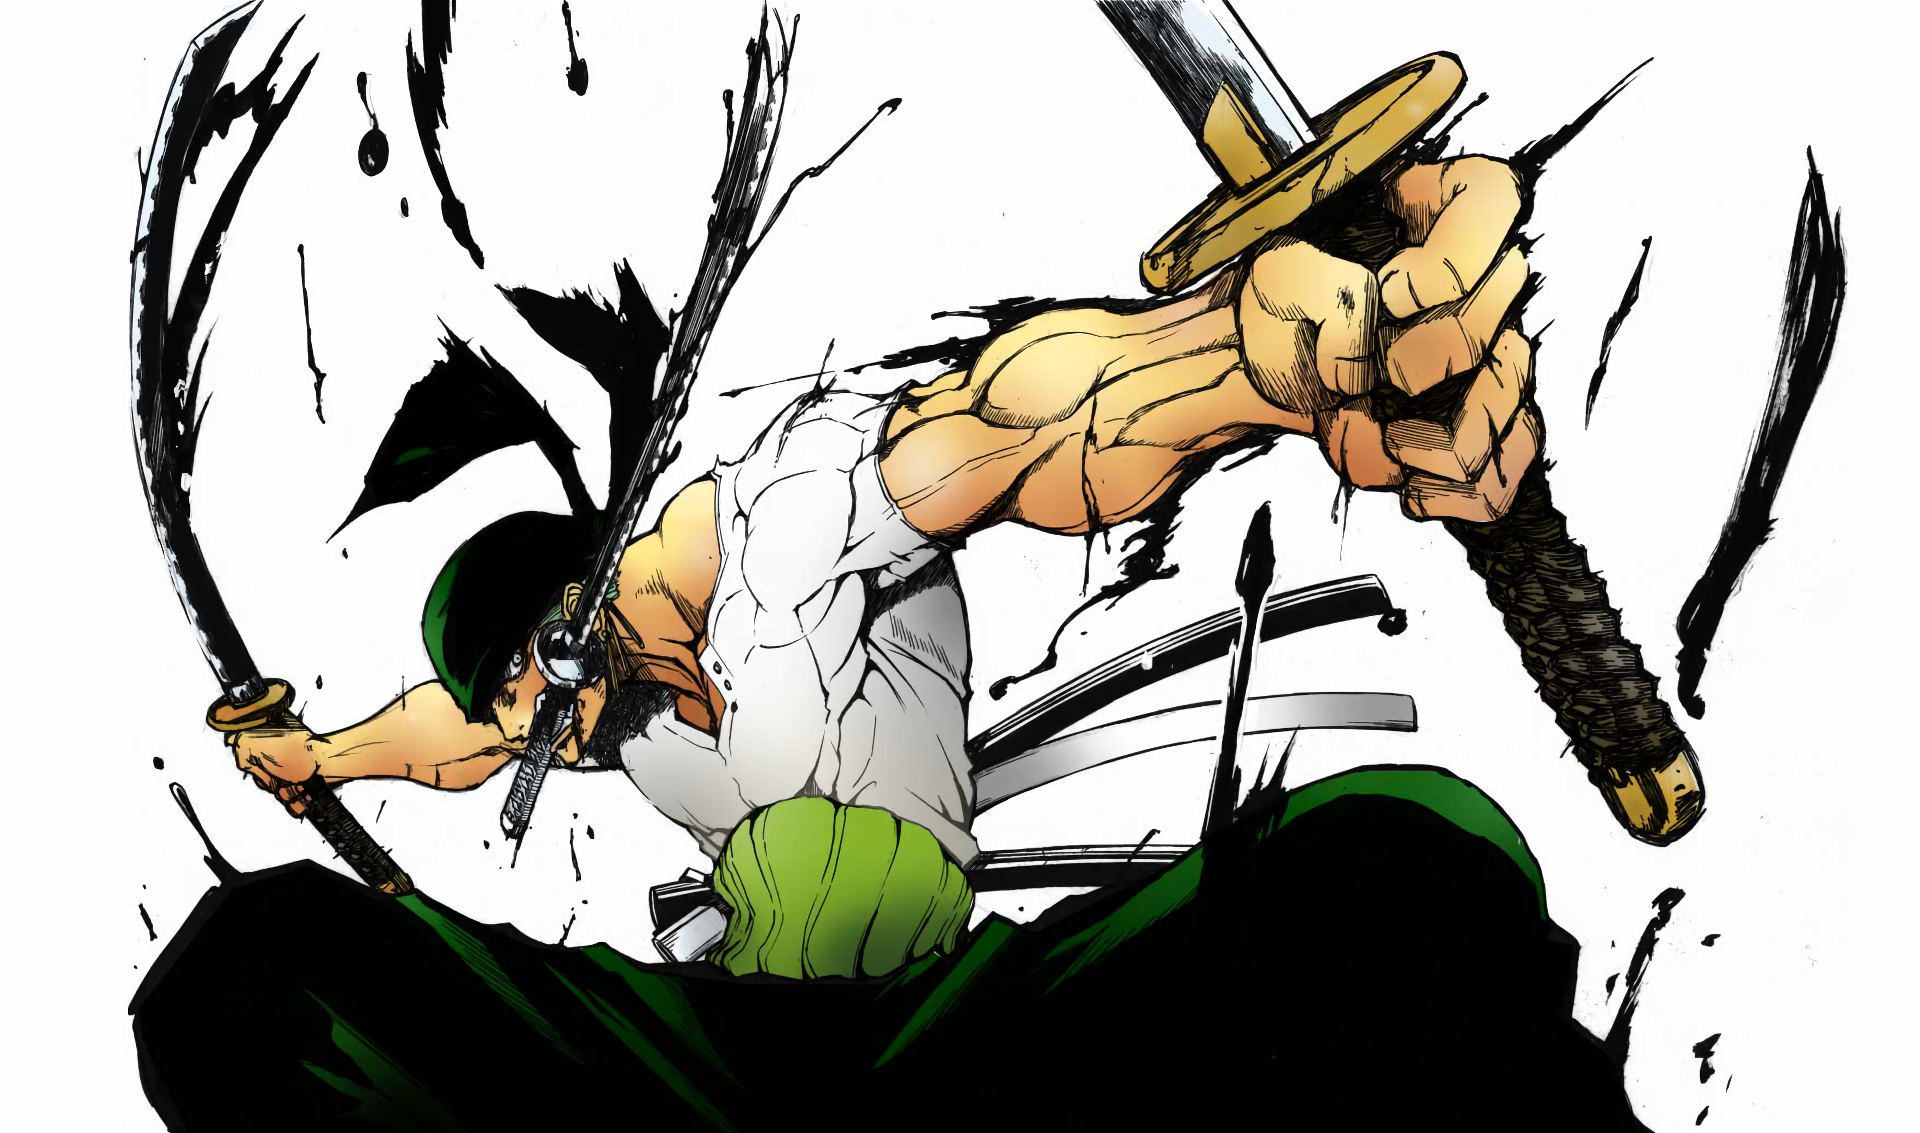 Anime One Piece Zoro Roronoa Santoryu One Piece Wallpaper In 2020 Zoro One Piece Roronoa Zoro One Piece Anime